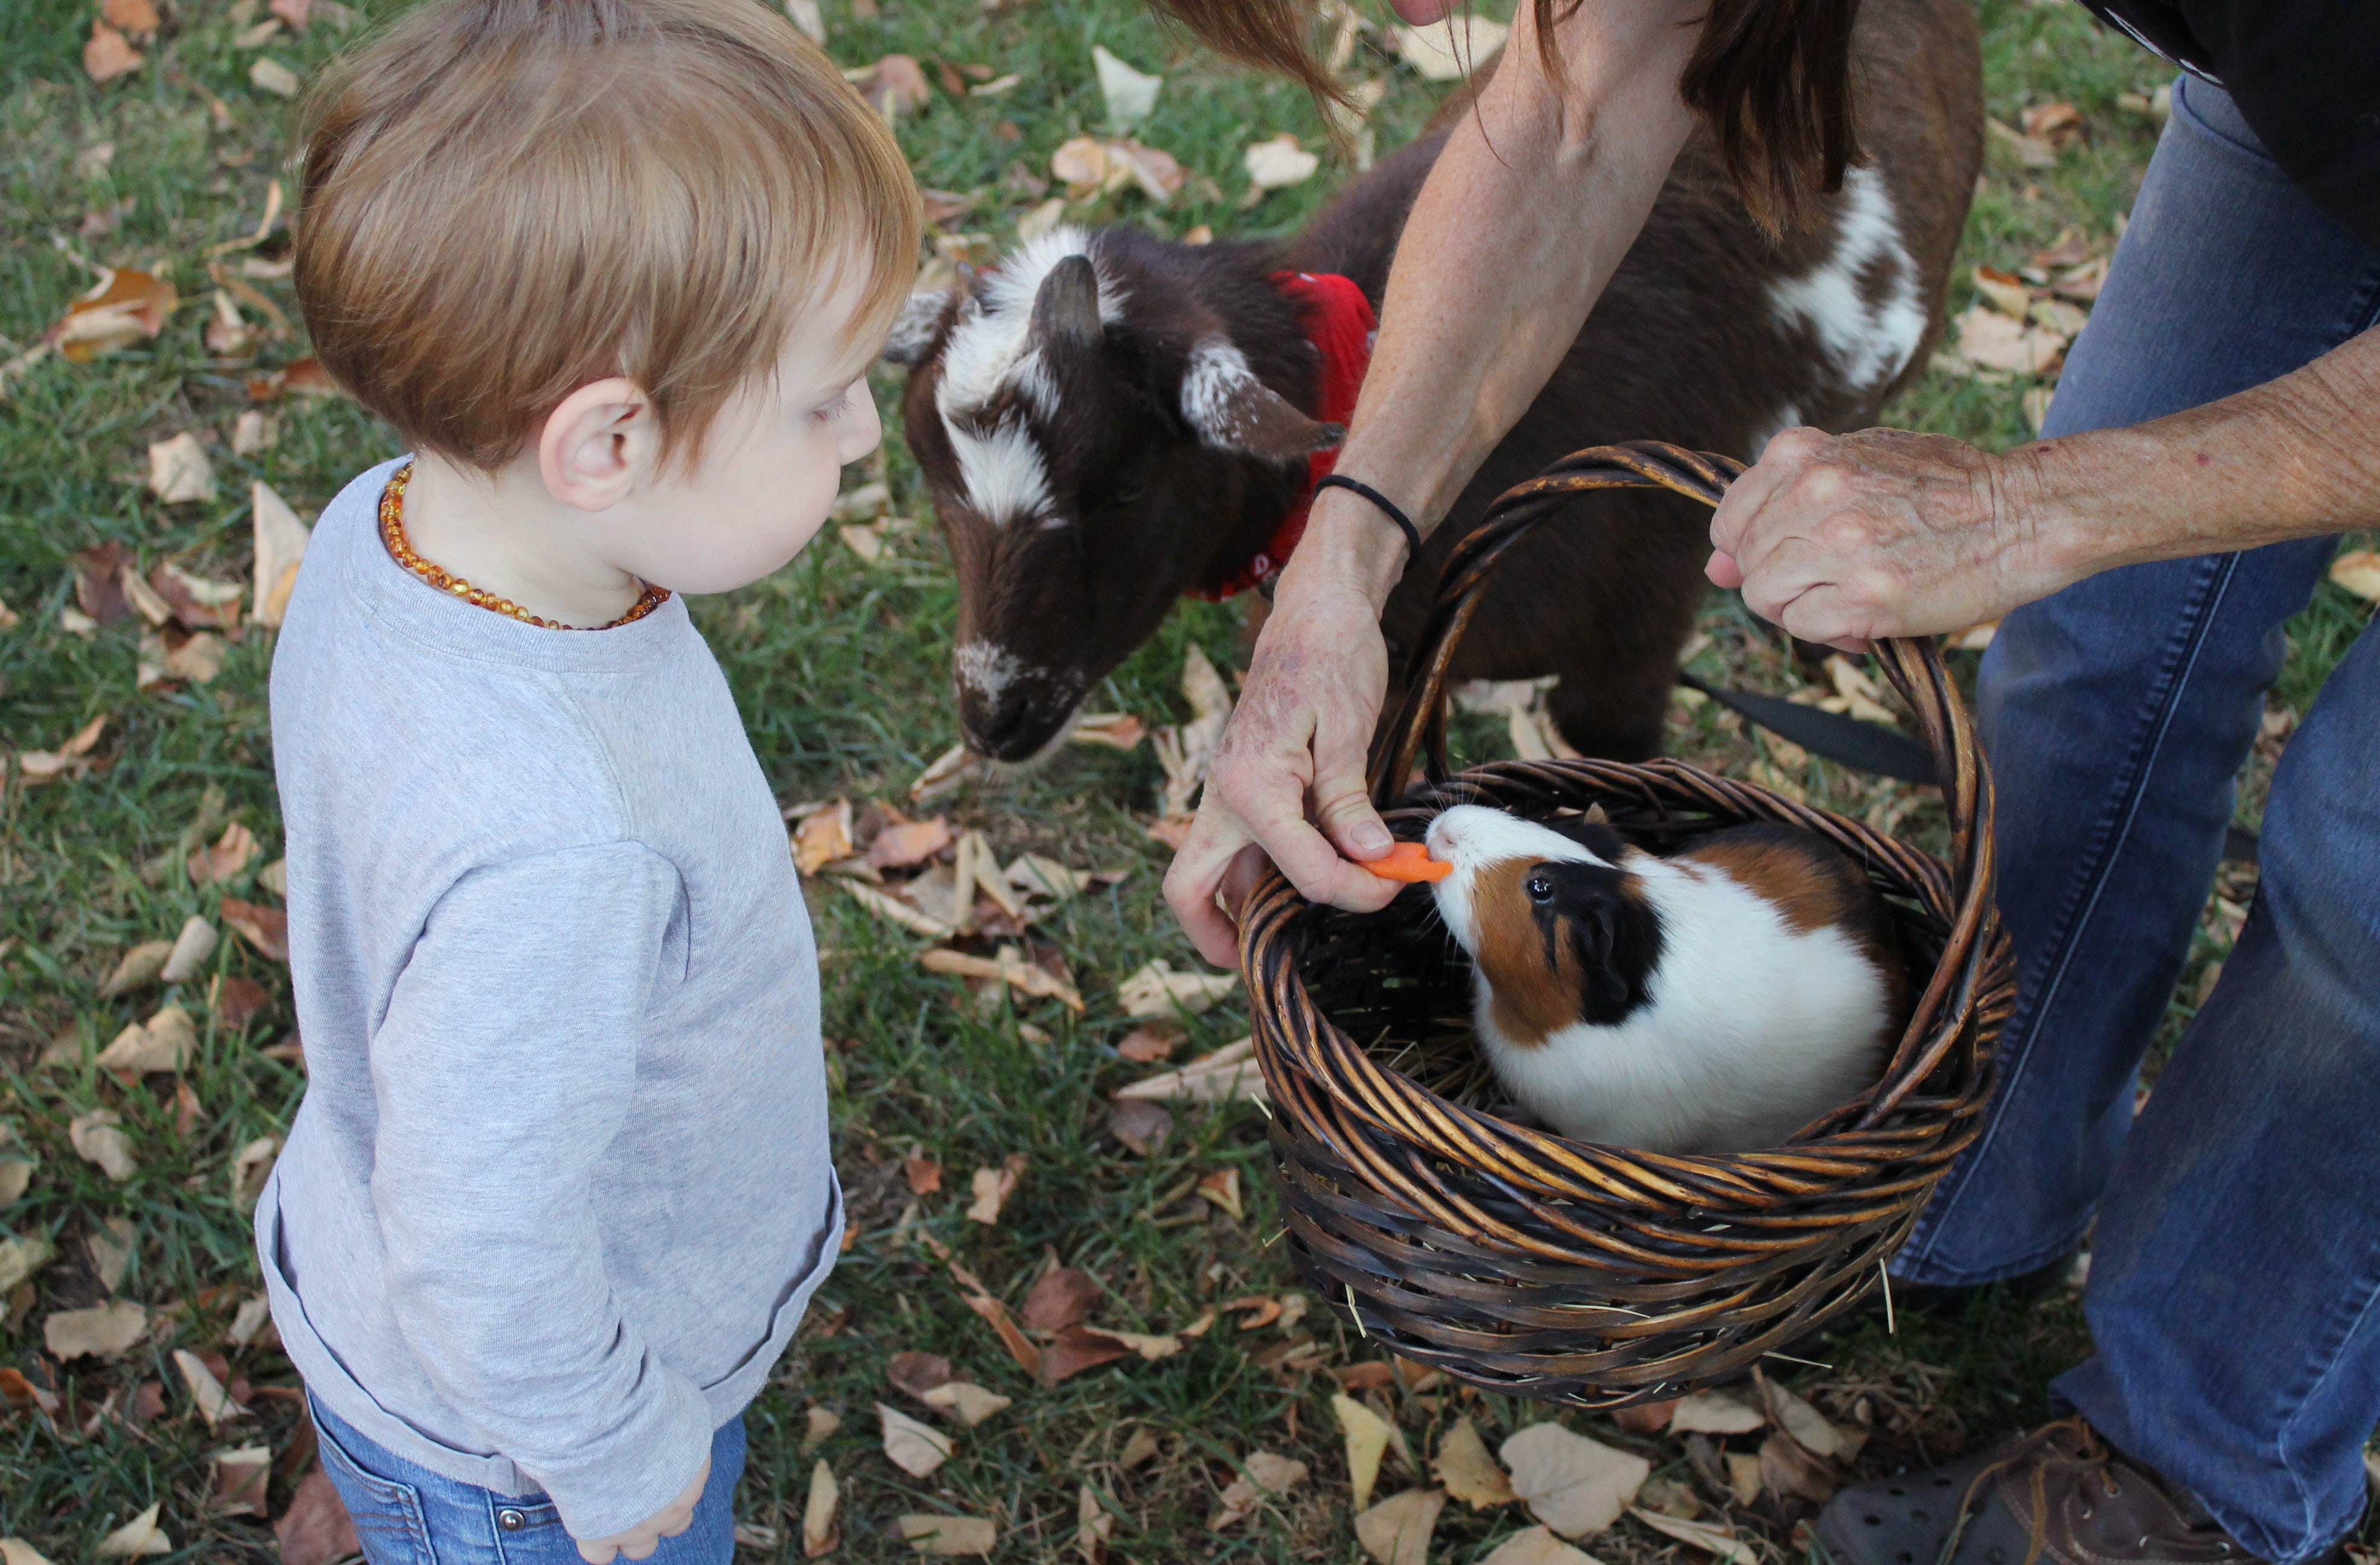 Adult farmer holds a bunny in a basket, feeds it a carrot while a boy looks on